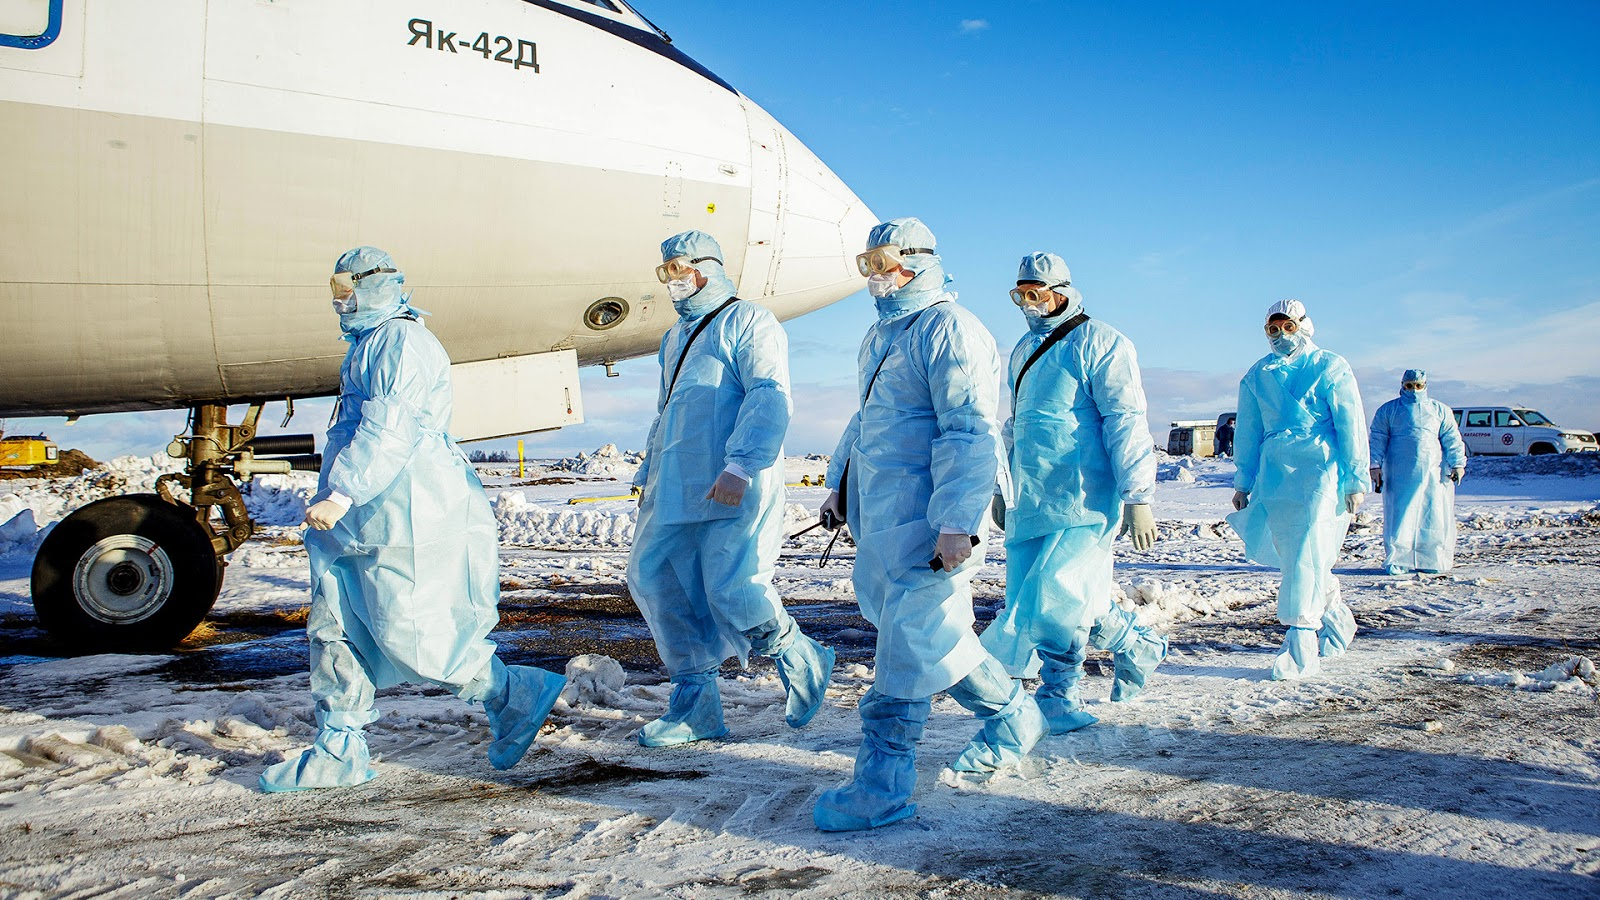 How Russia Deal With The Coronavirus?